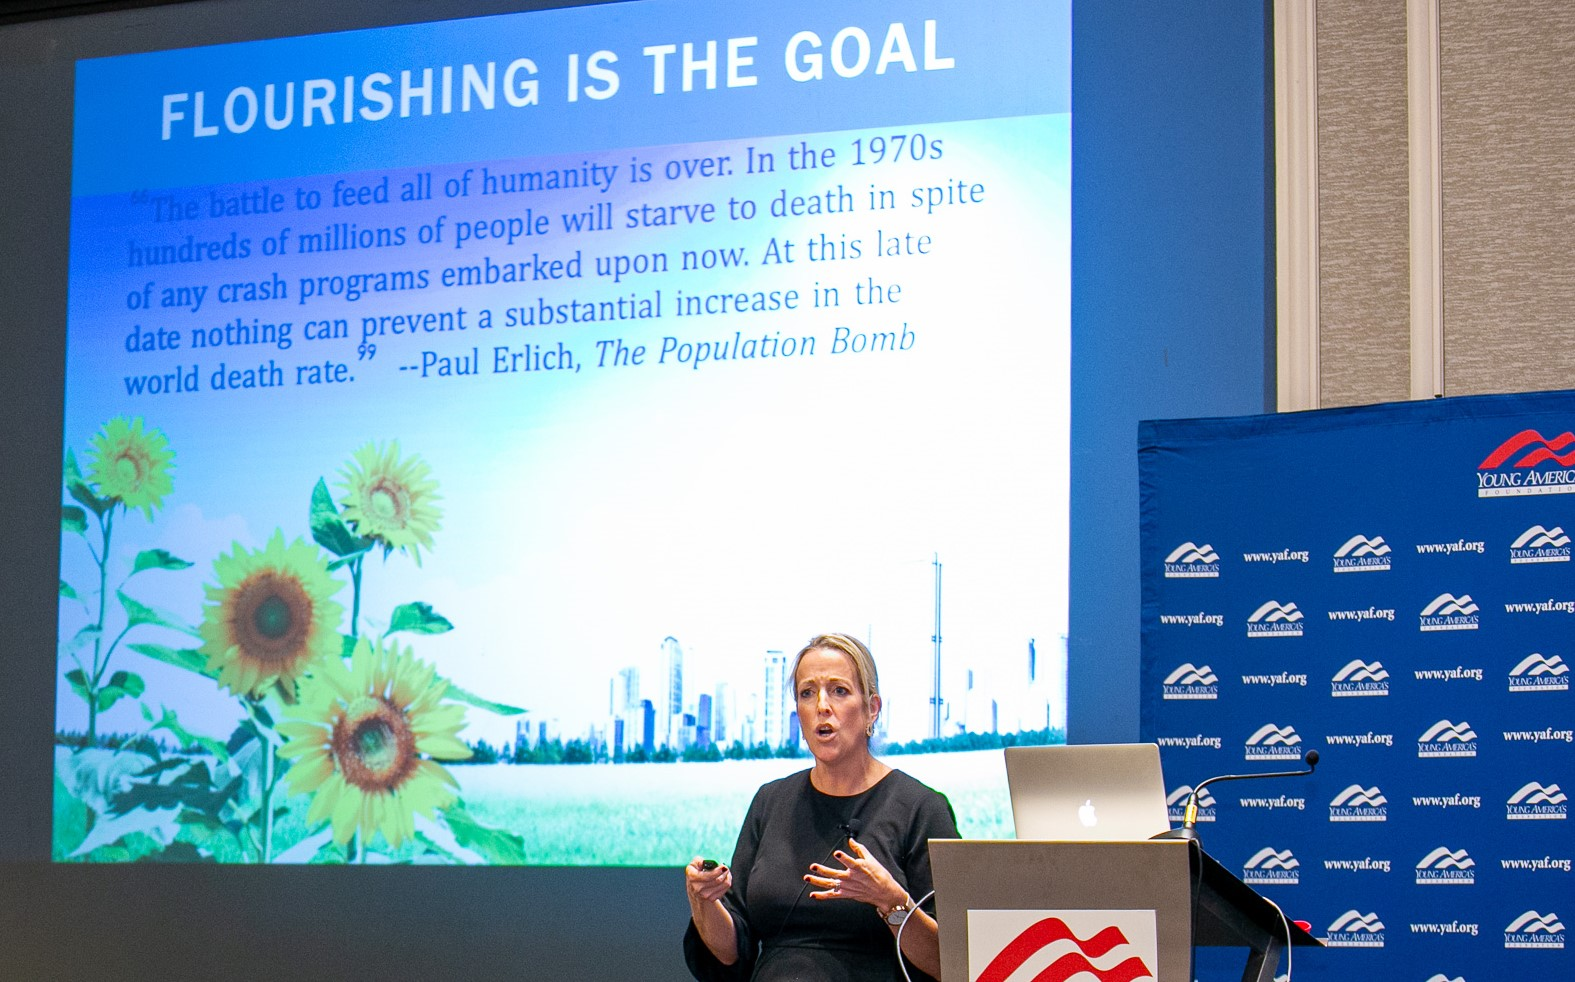 <h1><strong>How to Promote Human Flourishing featuring Dr. Anne Bradley at the Road to Freedom Seminar</strong></h1>